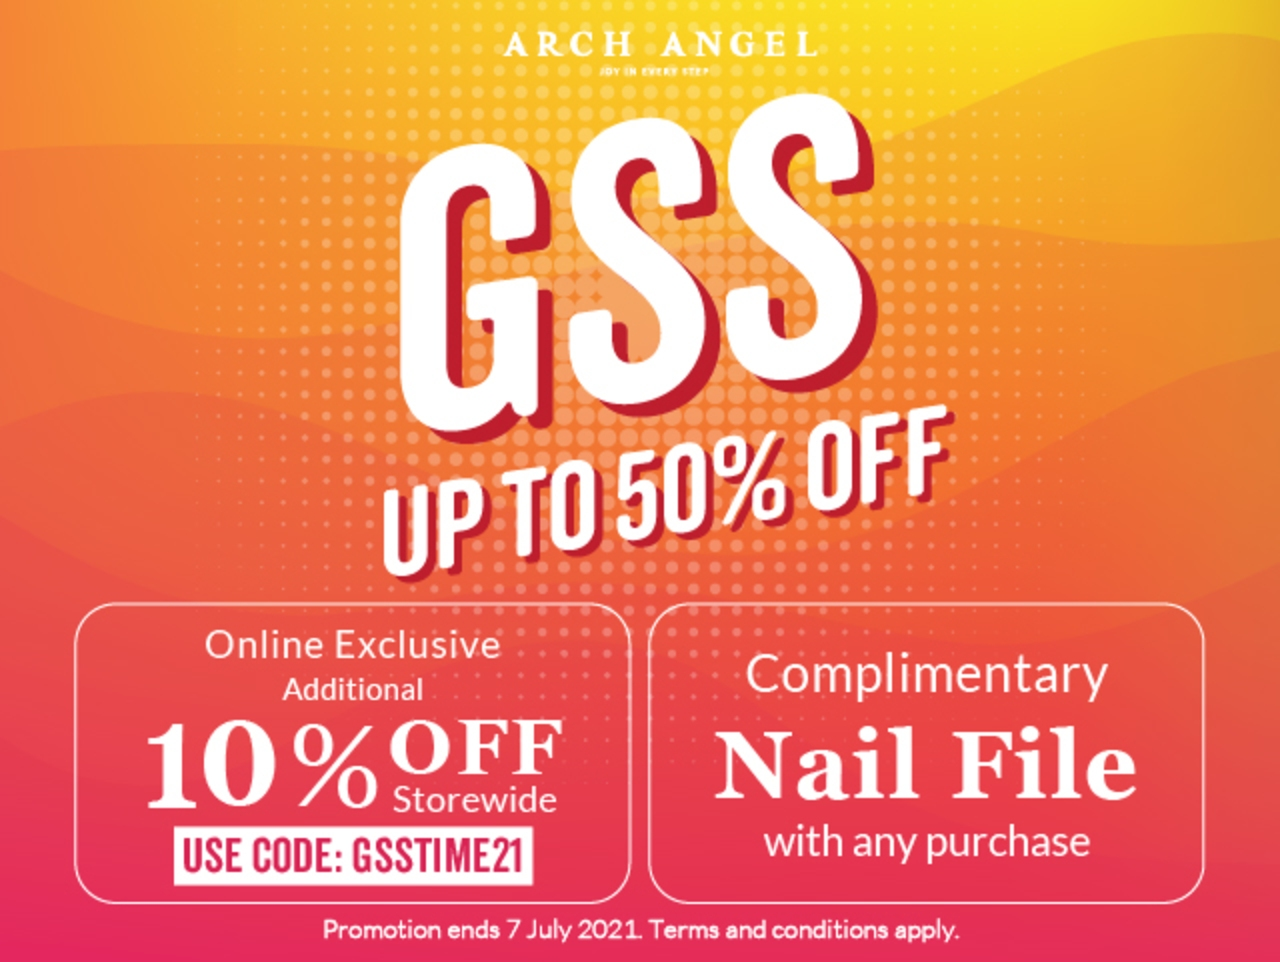 Spend GSS with Arch Angel and get 10% off storewide!